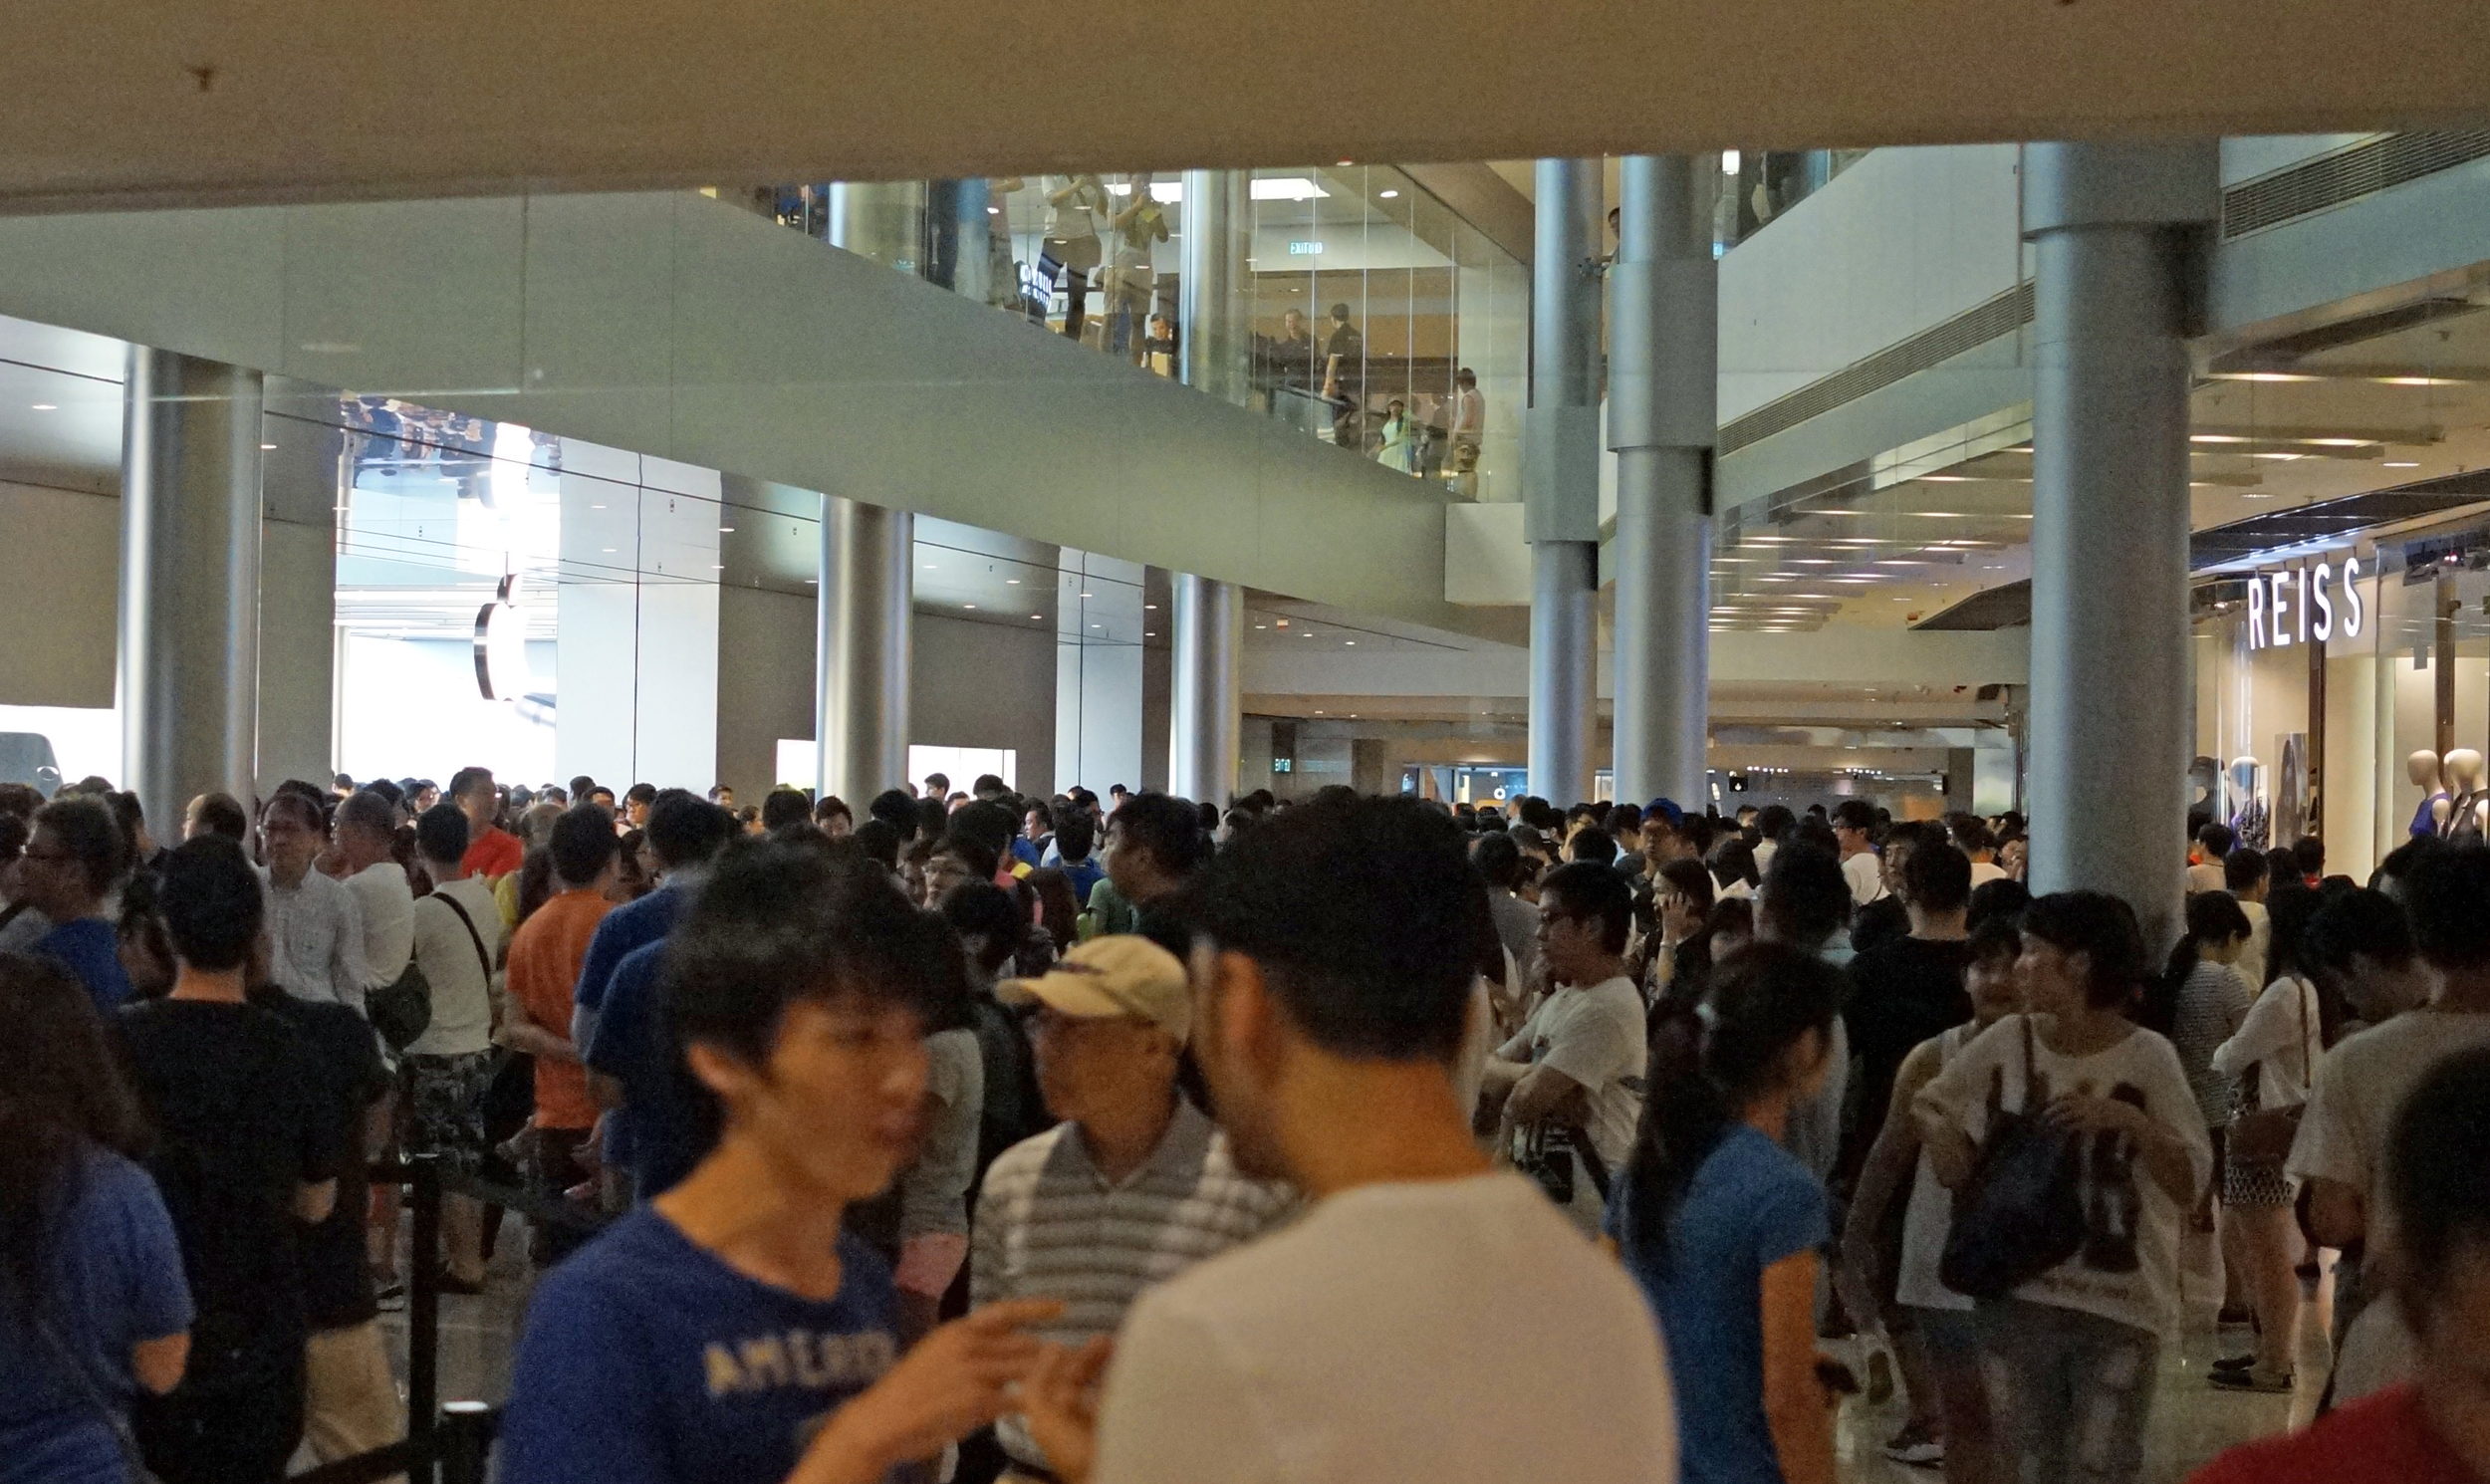 About 800 people lining up inside and outside the Apple Store at IFC Mall in Central, Hong Kong - waiting to take delivery of the new IPhone 6